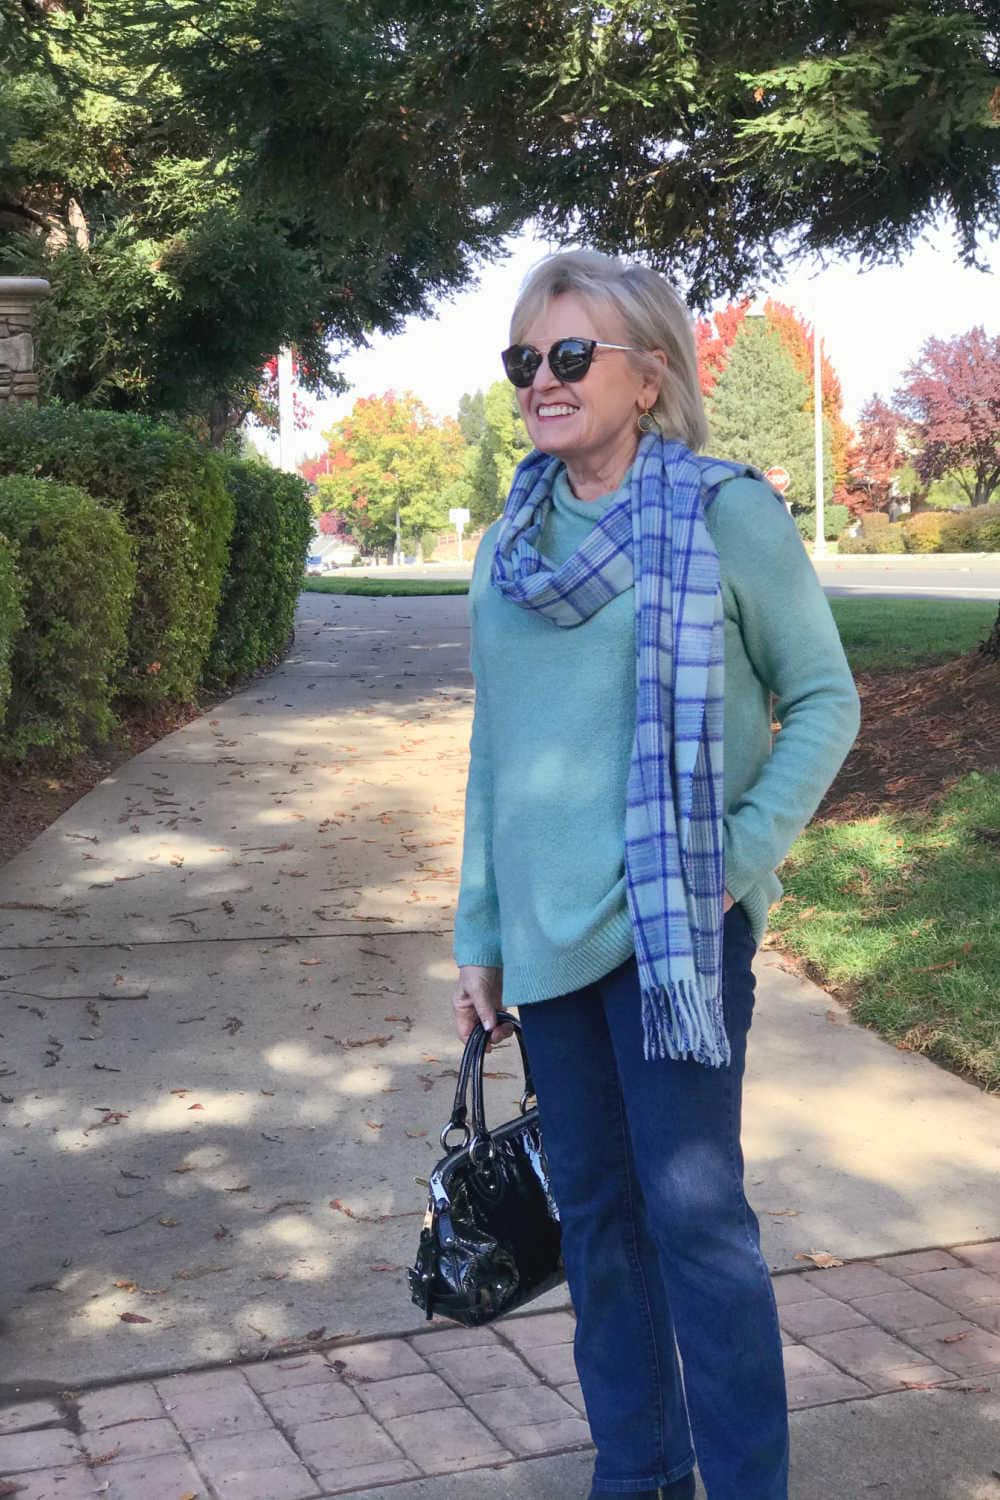 fashion blogger jennifer of a well styled life wearing plaid scarf over aqua sweater with blue jeans